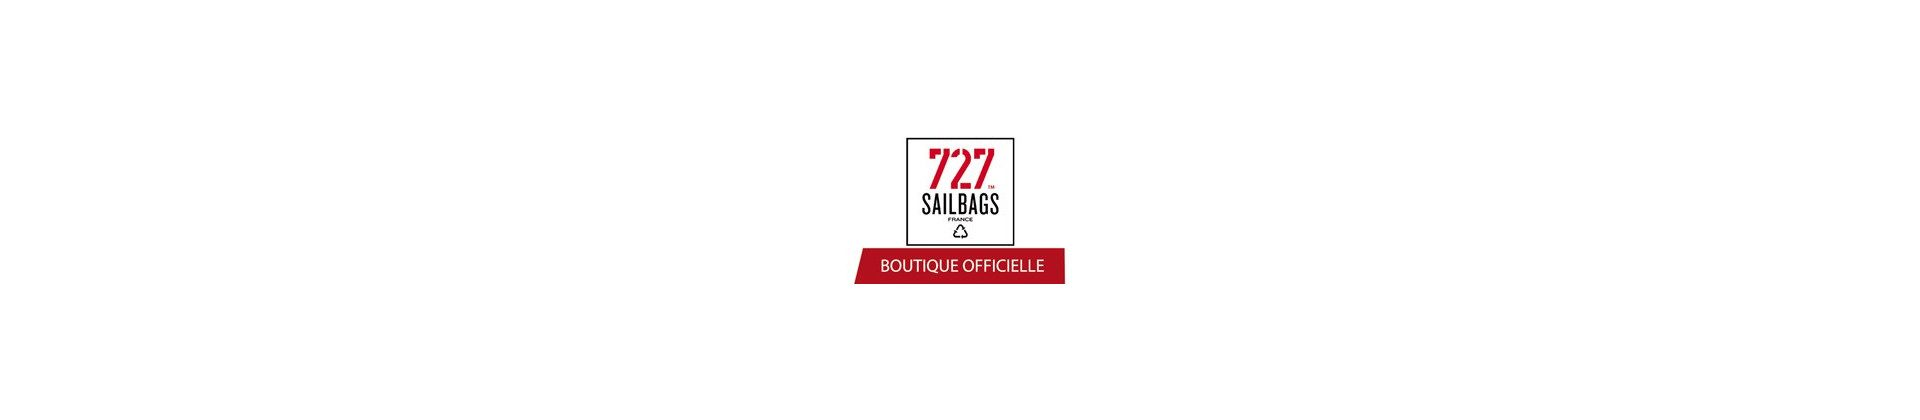 Bagagerie 727 Sailbags